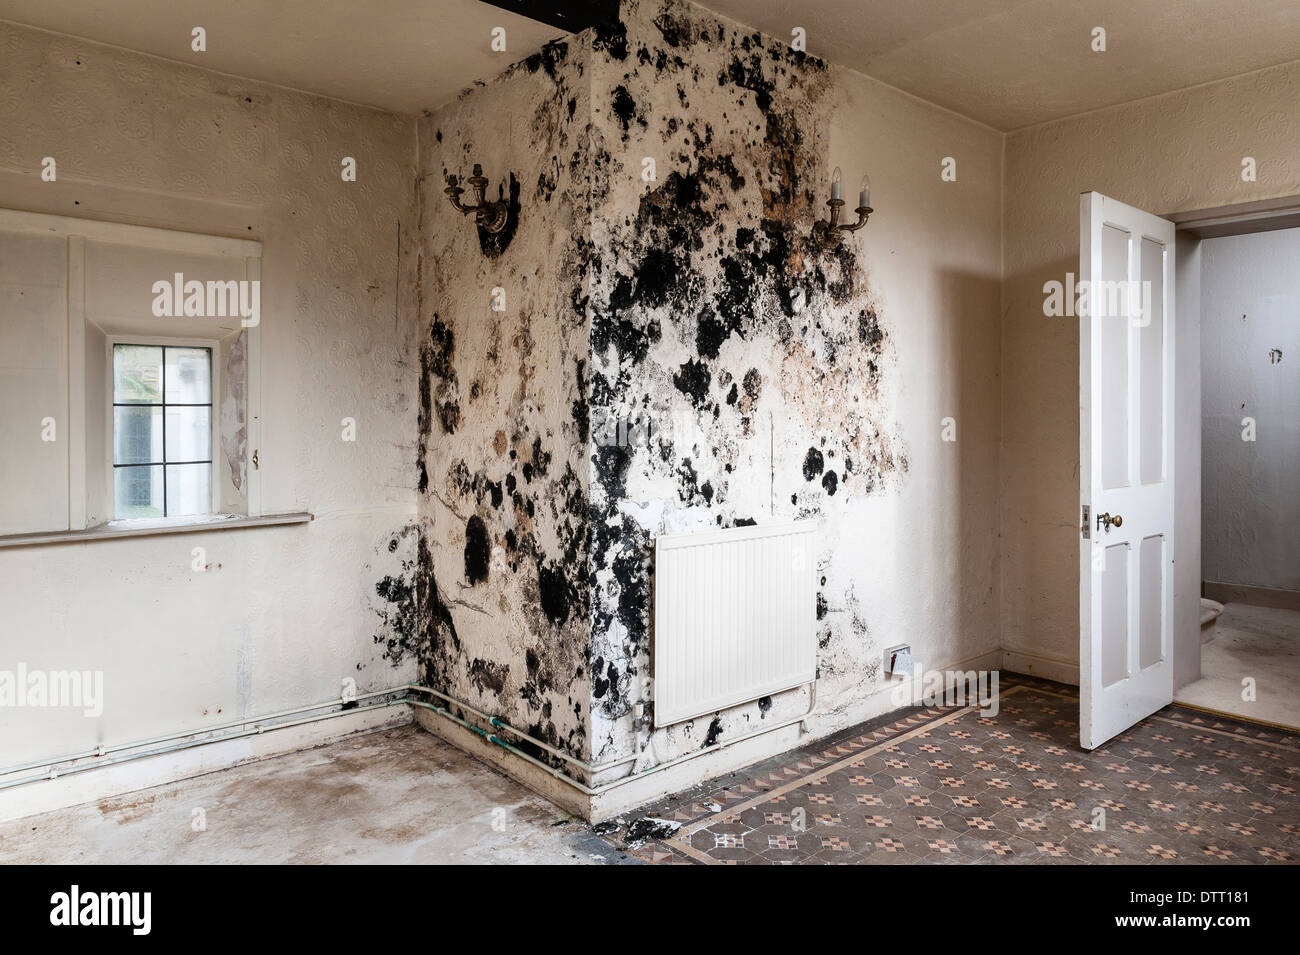 Diy black mold removal - Black Mould Stachybotrys Chartarum In An Empty House Uk A Health Risk